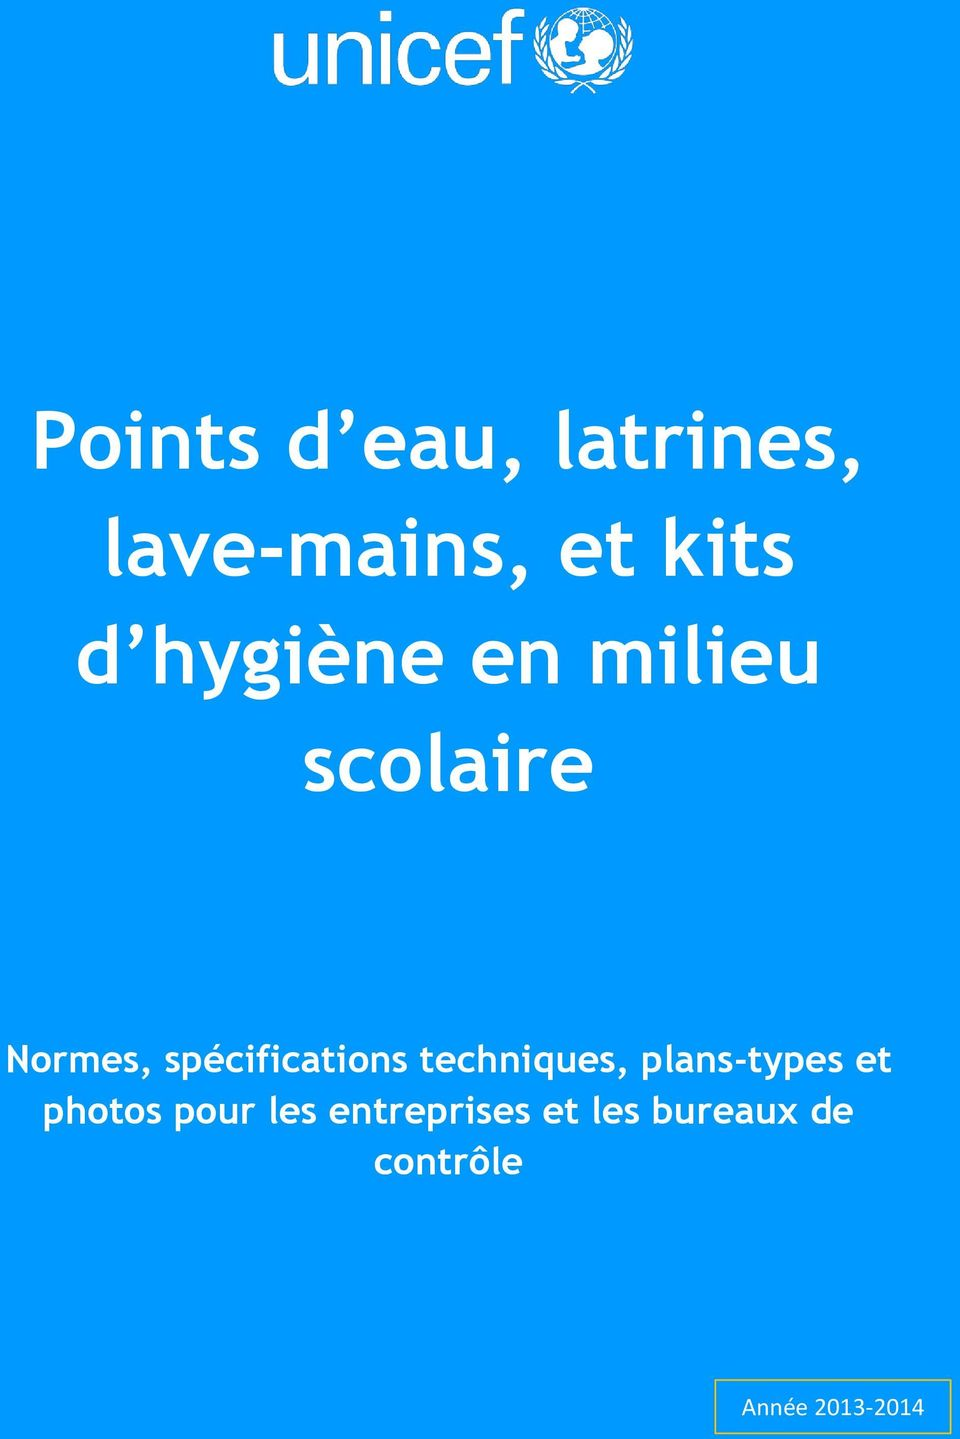 spécifications techniques, plans-types et photos